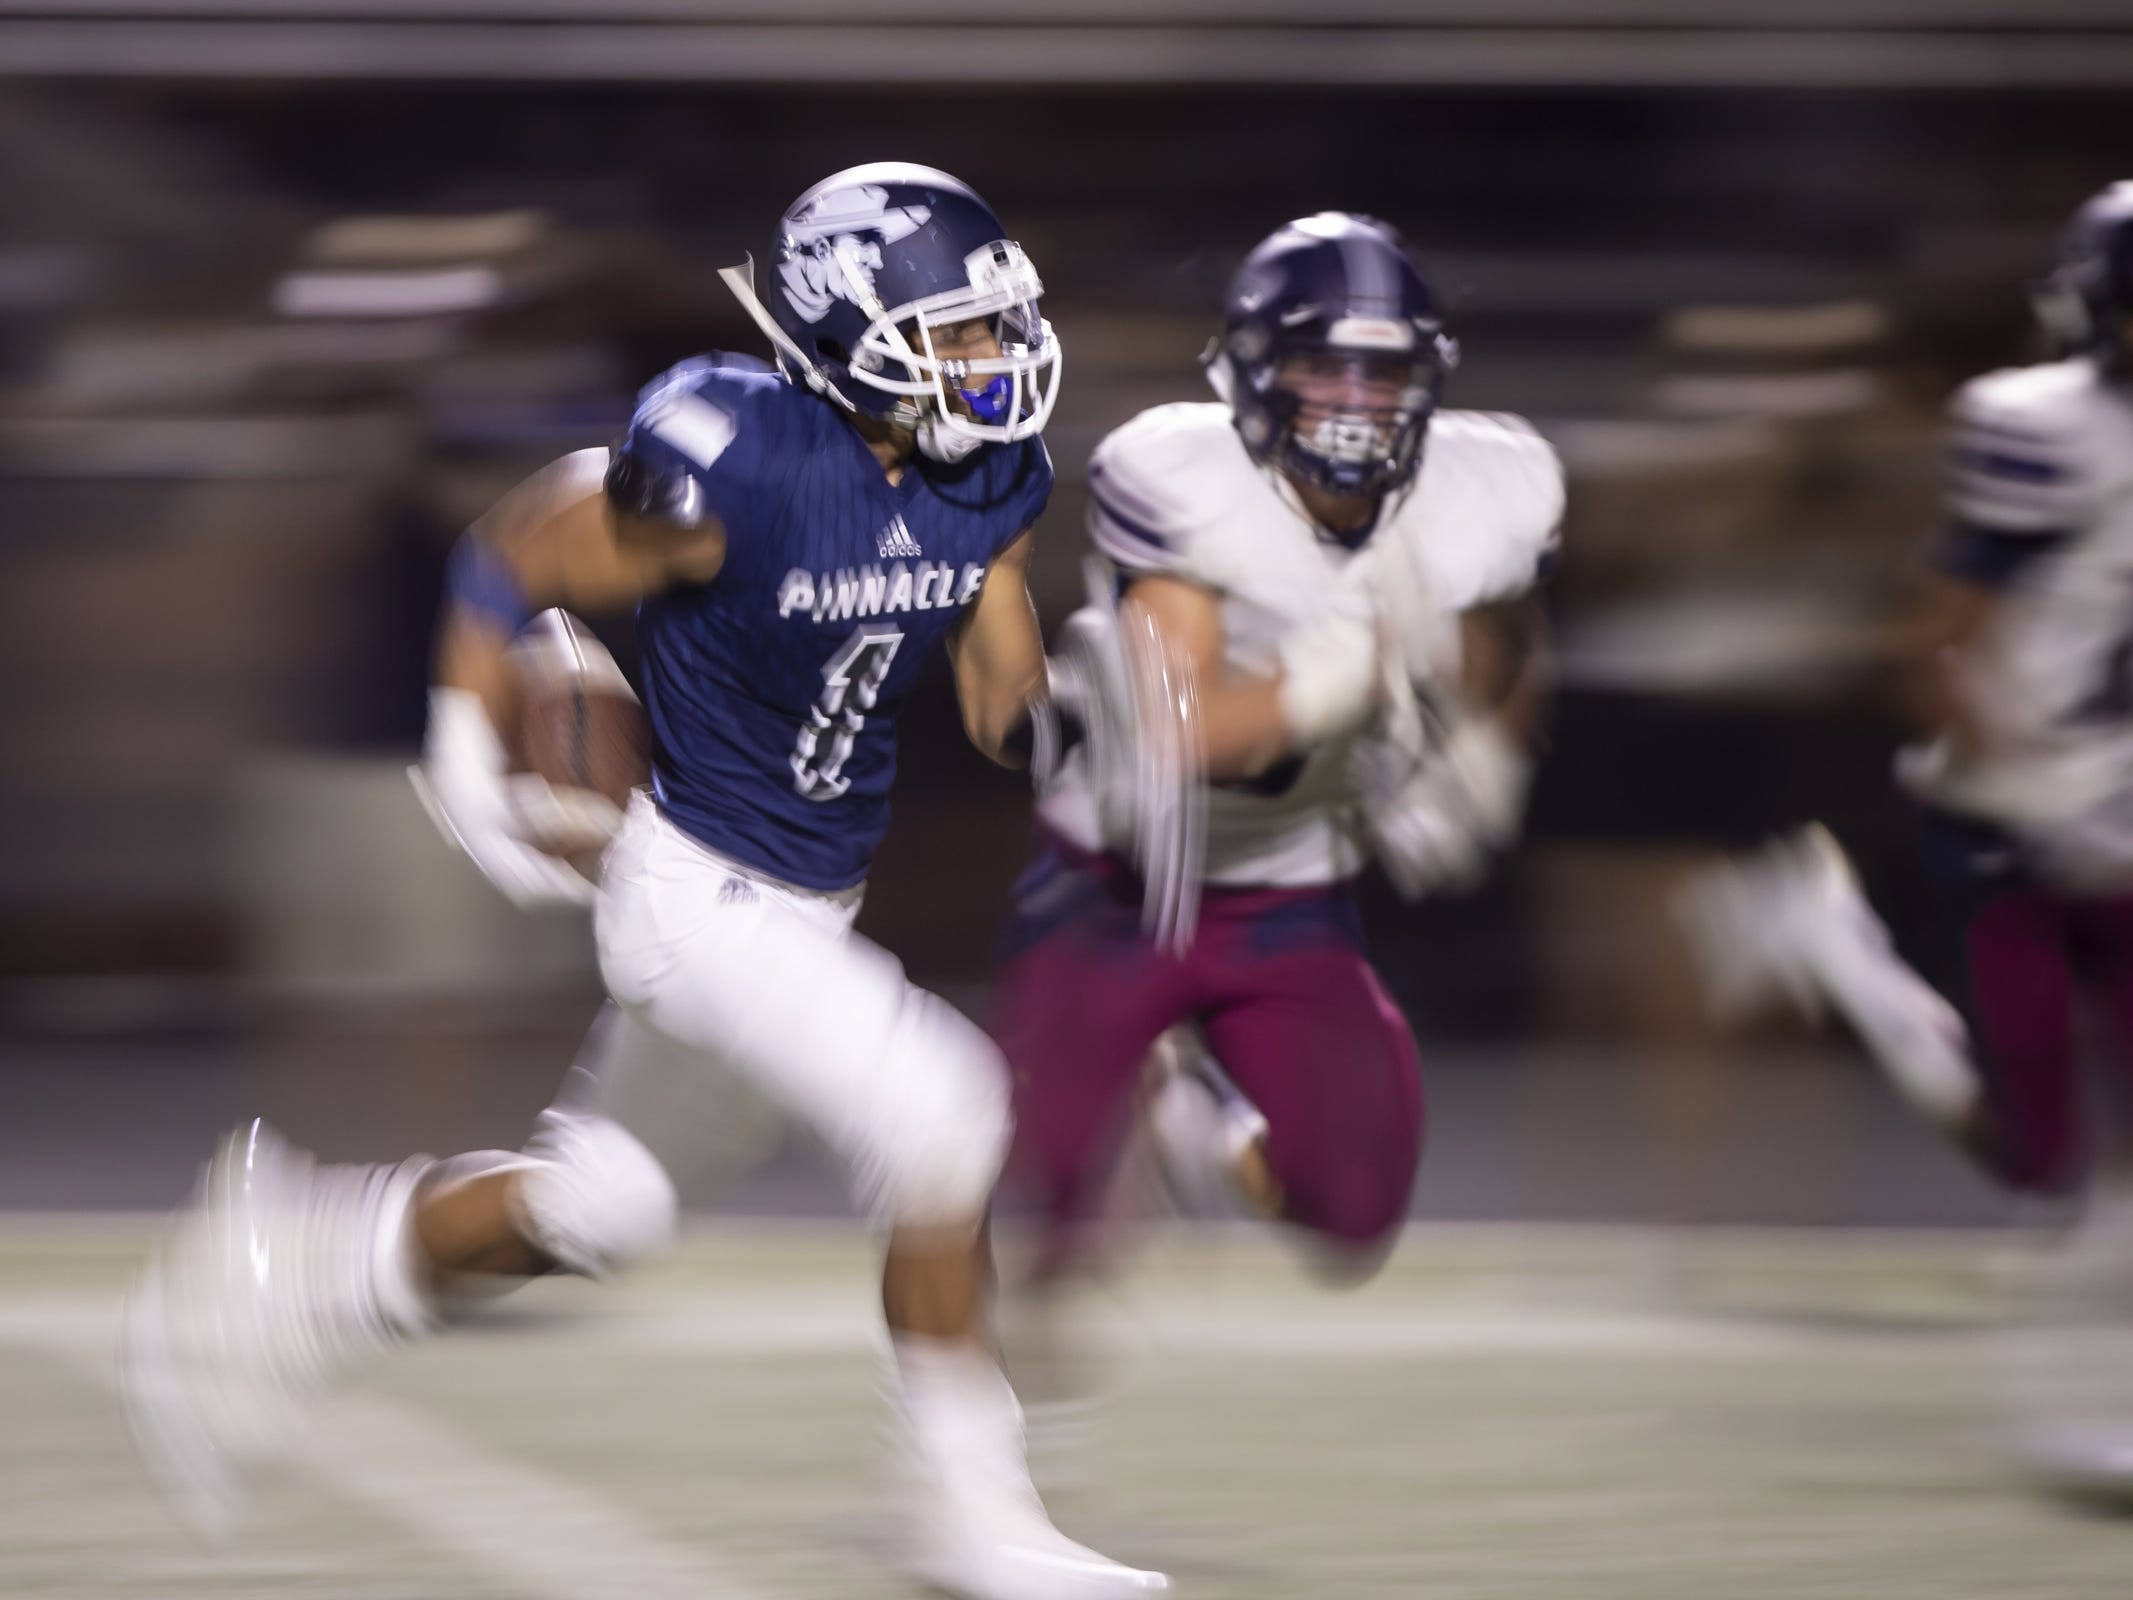 Running back Kaleb Covington (1) of the Pinnacle Pioneers runs the ball in for a touchdown against the Perry Pumas at Pinnacle High School on Friday, August 17, 2018 in Phoenix, Arizona.